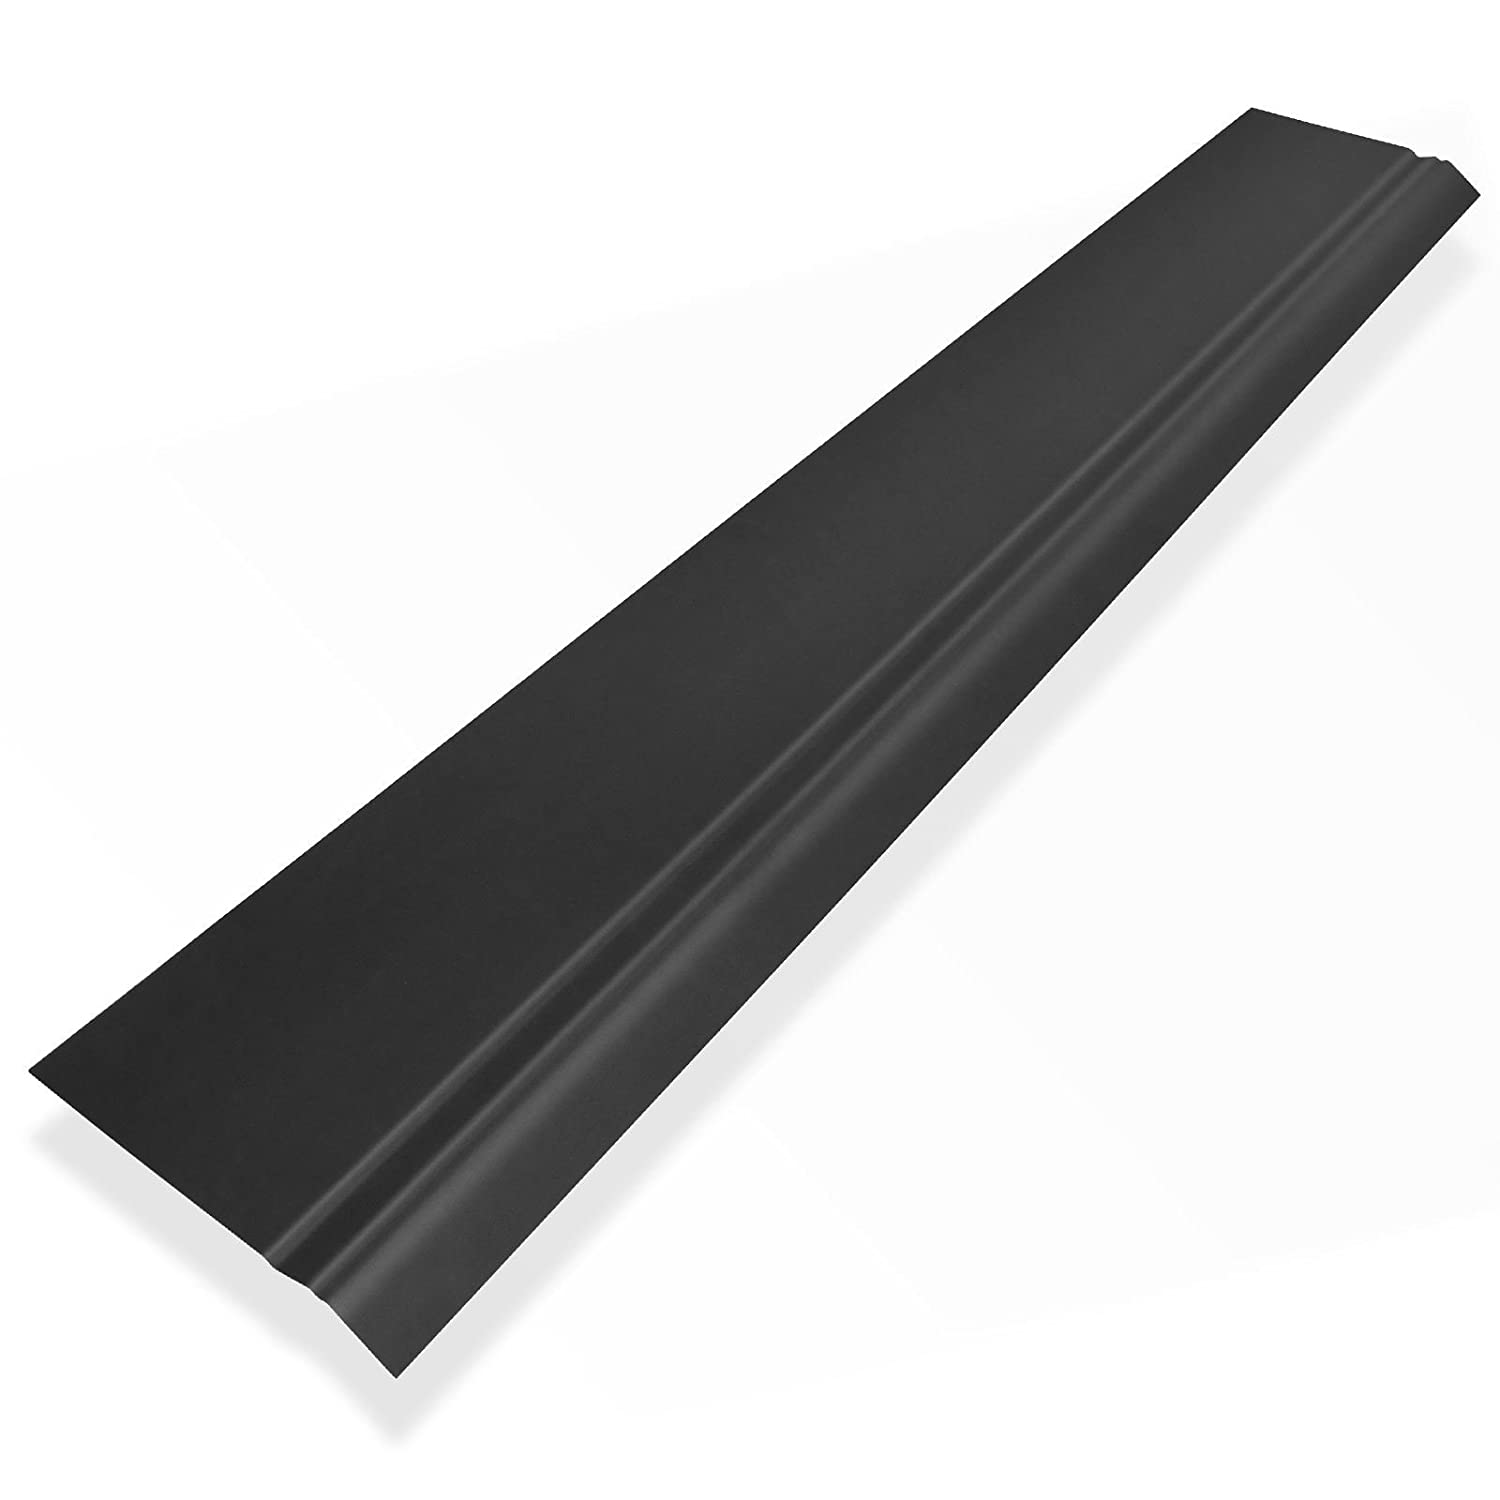 1.5m Eaves Protector Felt Support Tray (10 Pack) Truly PVC Supplies